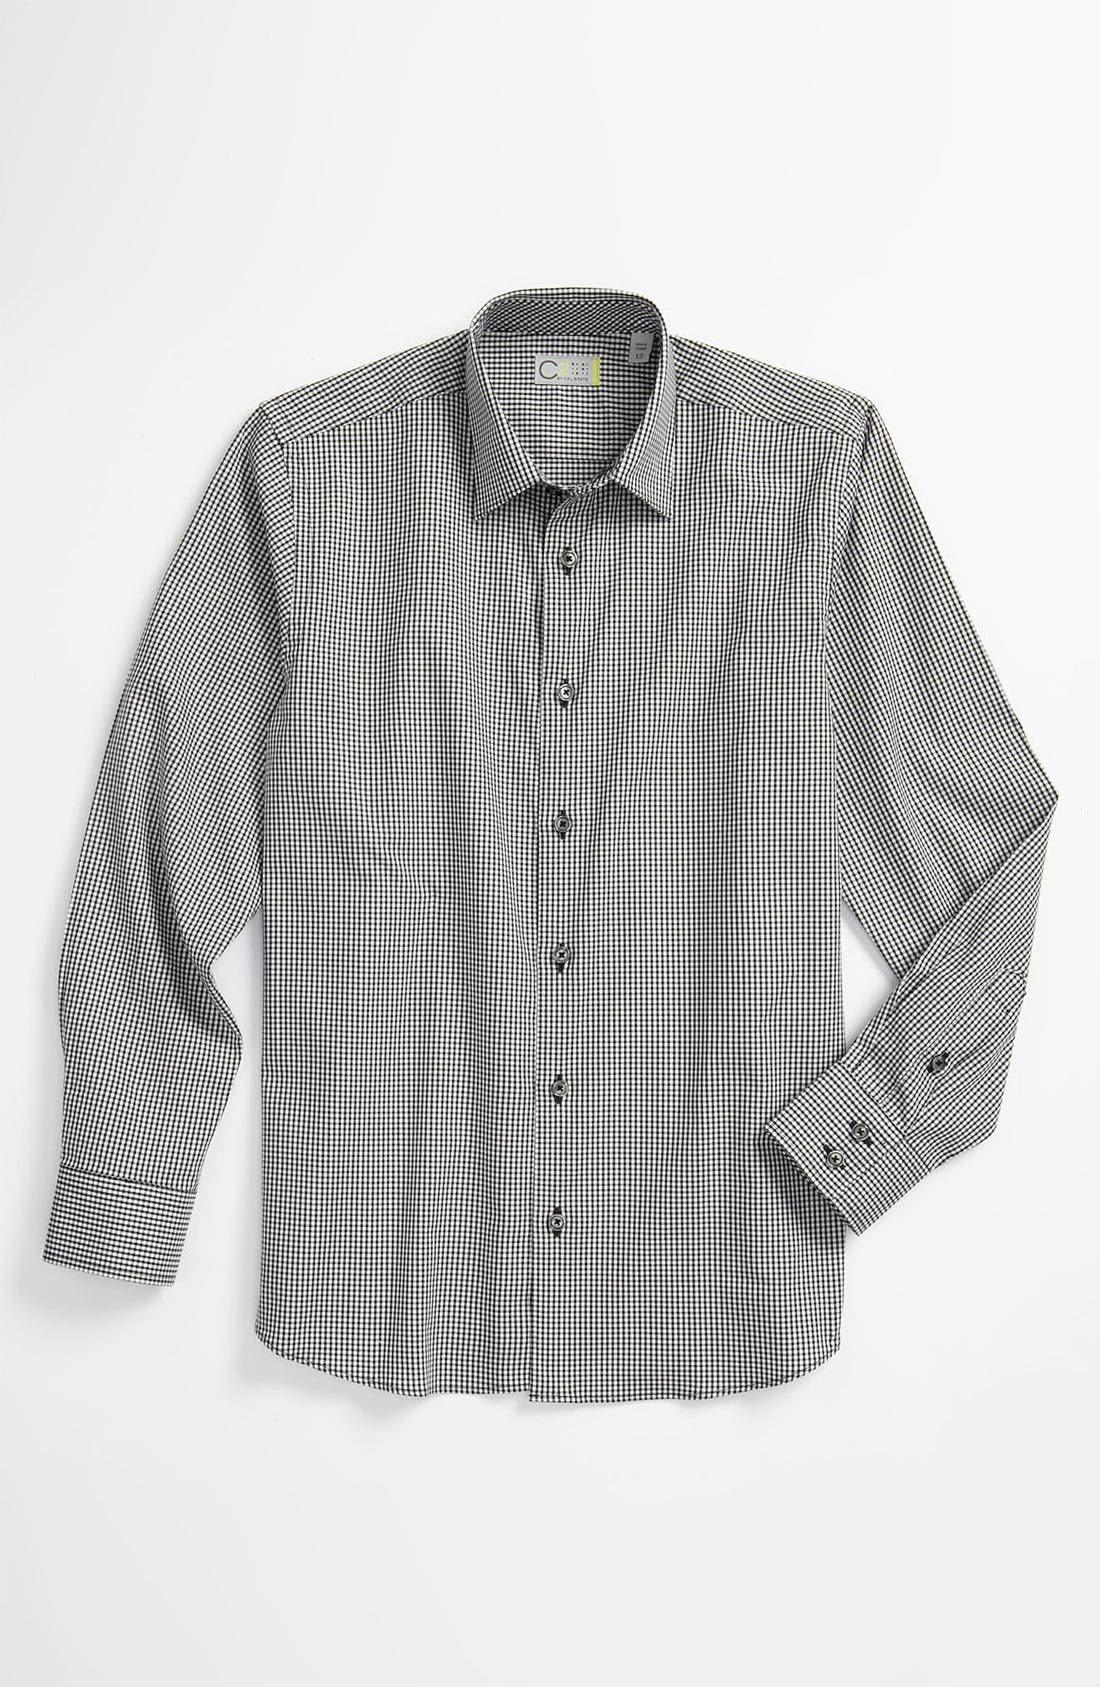 Alternate Image 1 Selected - C2 by Calibrate 'Carter' Dress Shirt (Big Boys)